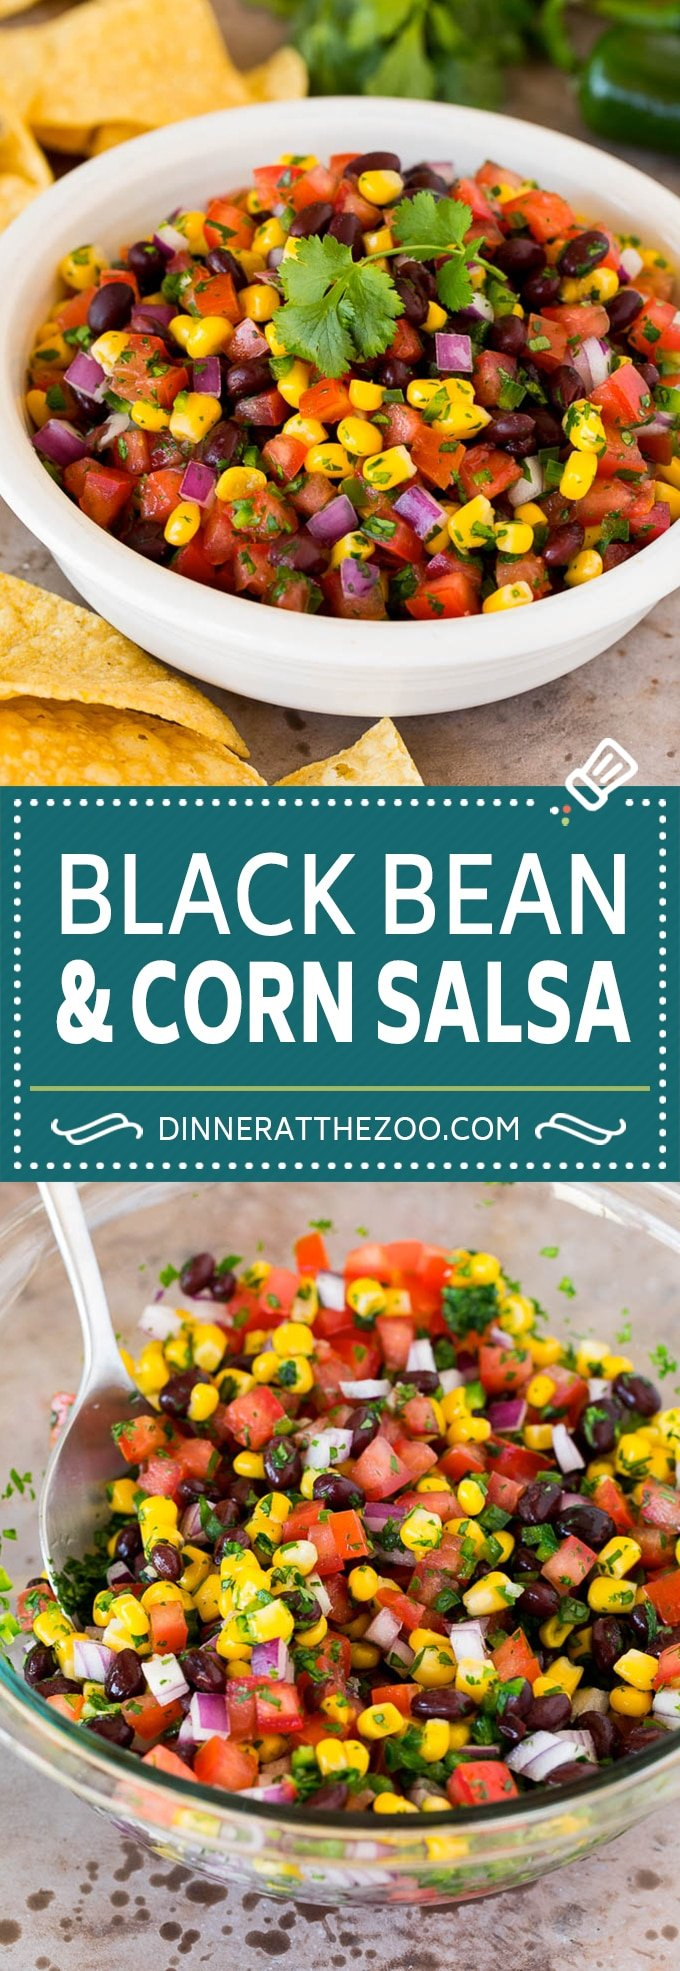 This black bean and corn salsa is a blend of fresh tomatoes, cilantro, jalapeno, corn kernels and beans, all mixed together to make a zesty and flavorful dip.